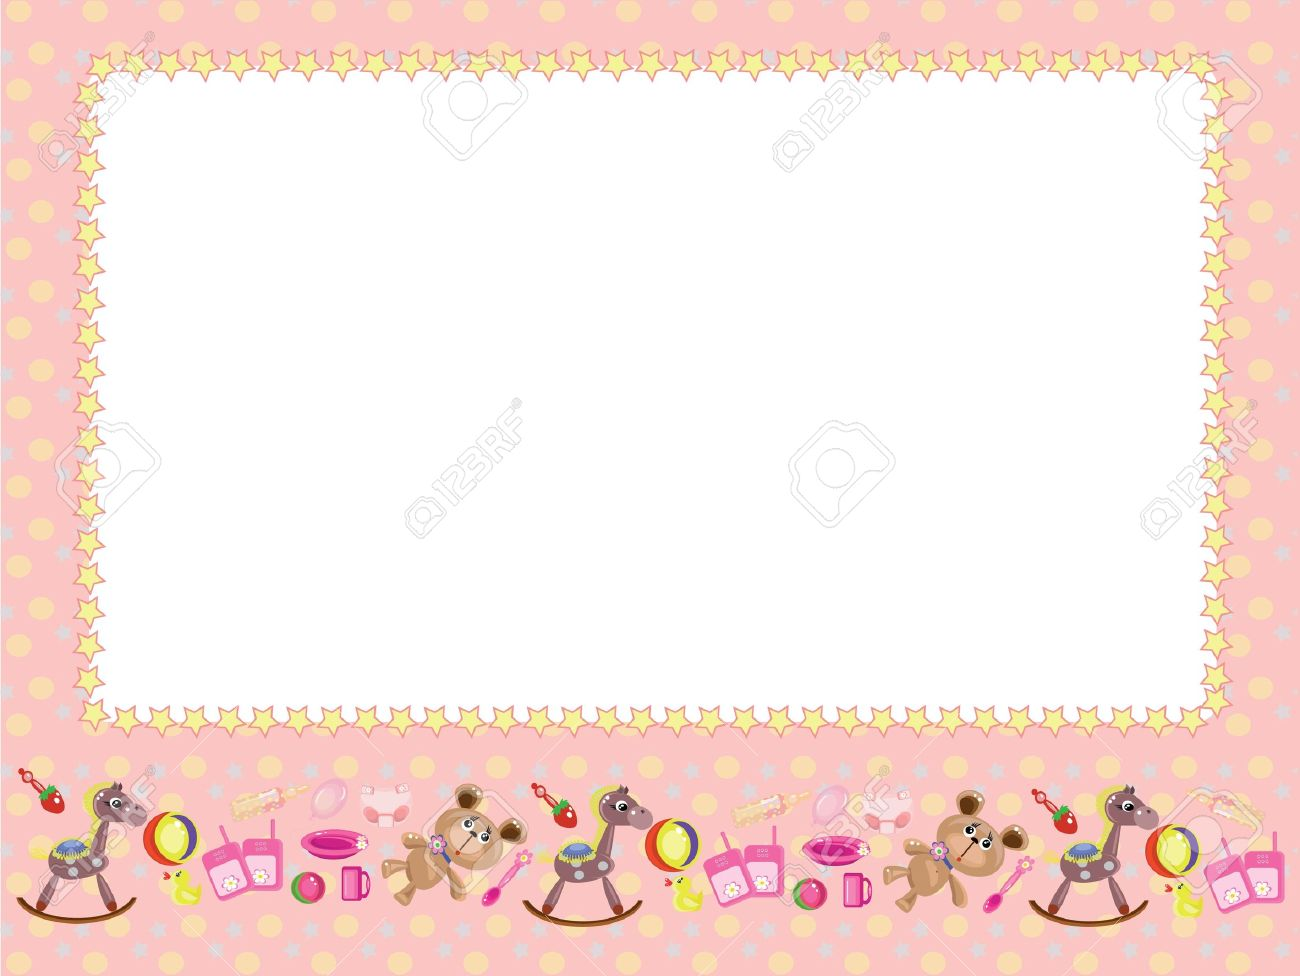 birthday borders for girls akba greenw co